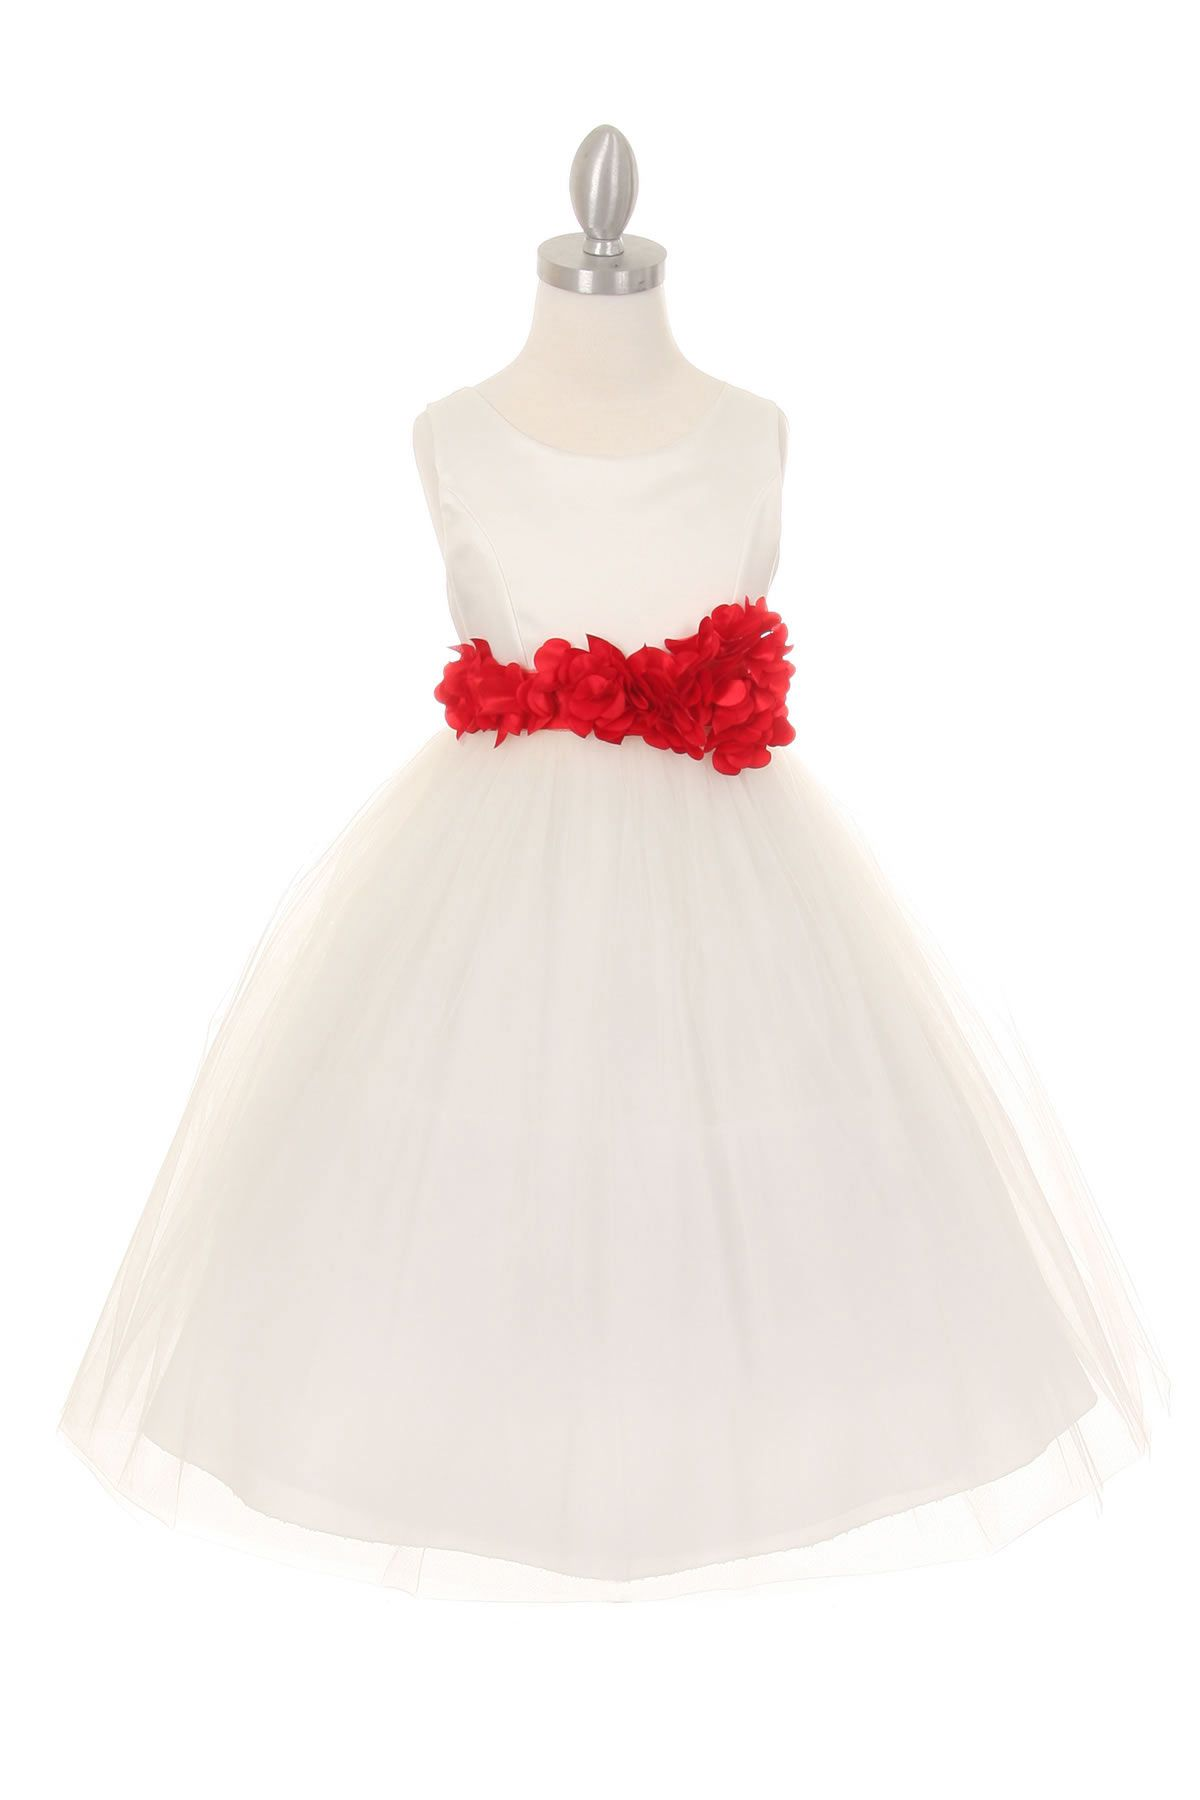 Girls Dress Style 1170 4 Choice Of White Or Ivory Dress With Red